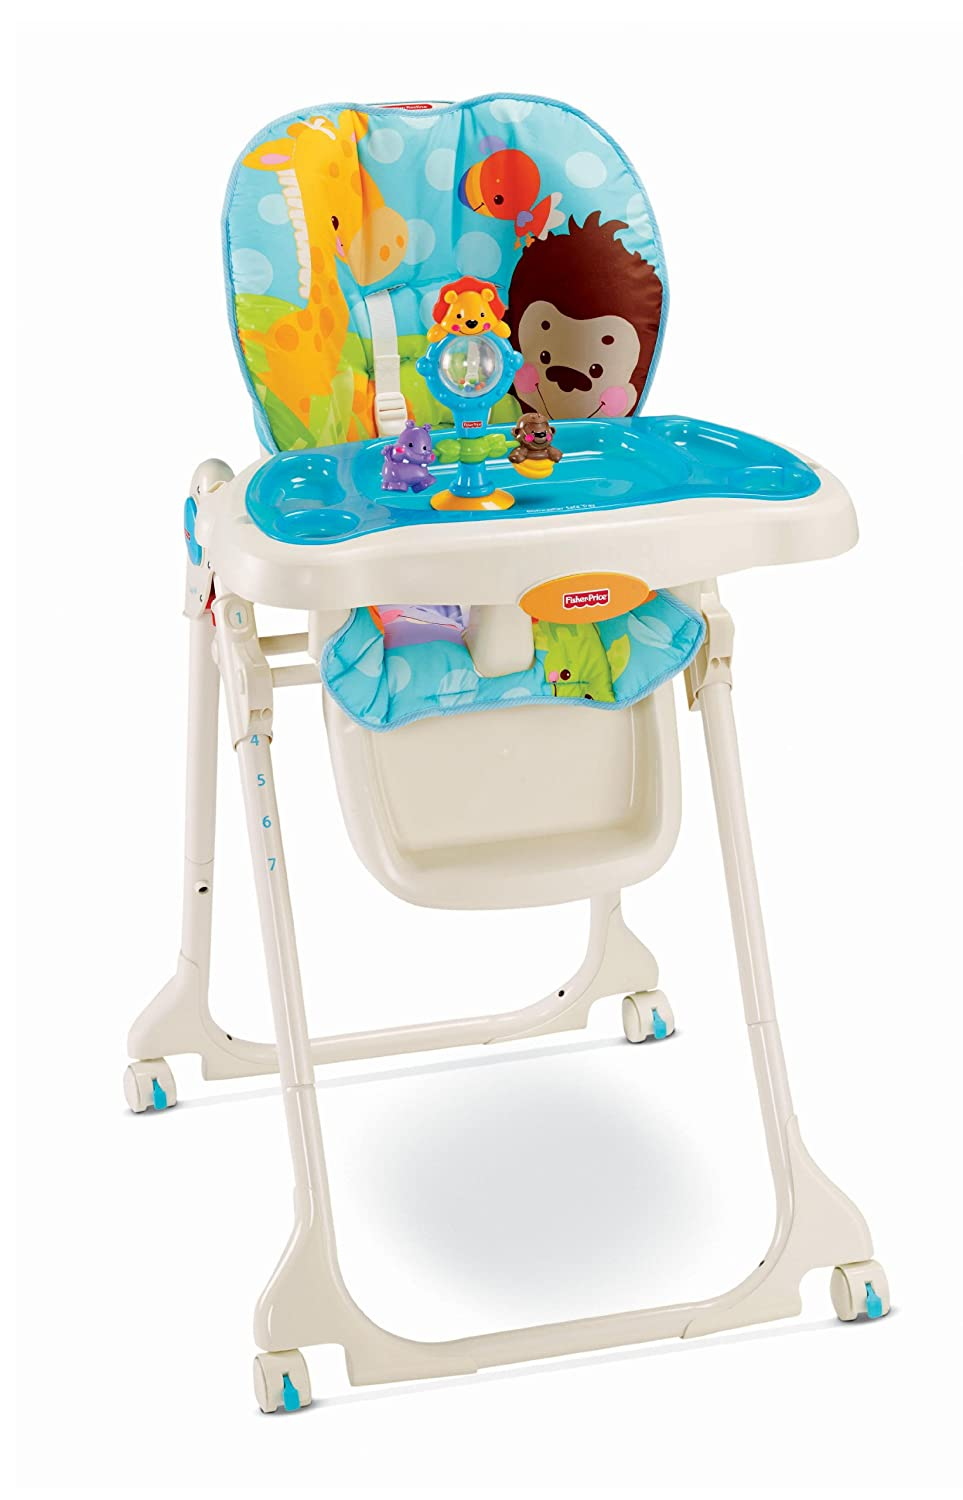 Fisher price precious planet high chair - Fisher Price Precious Planet High Chair 0